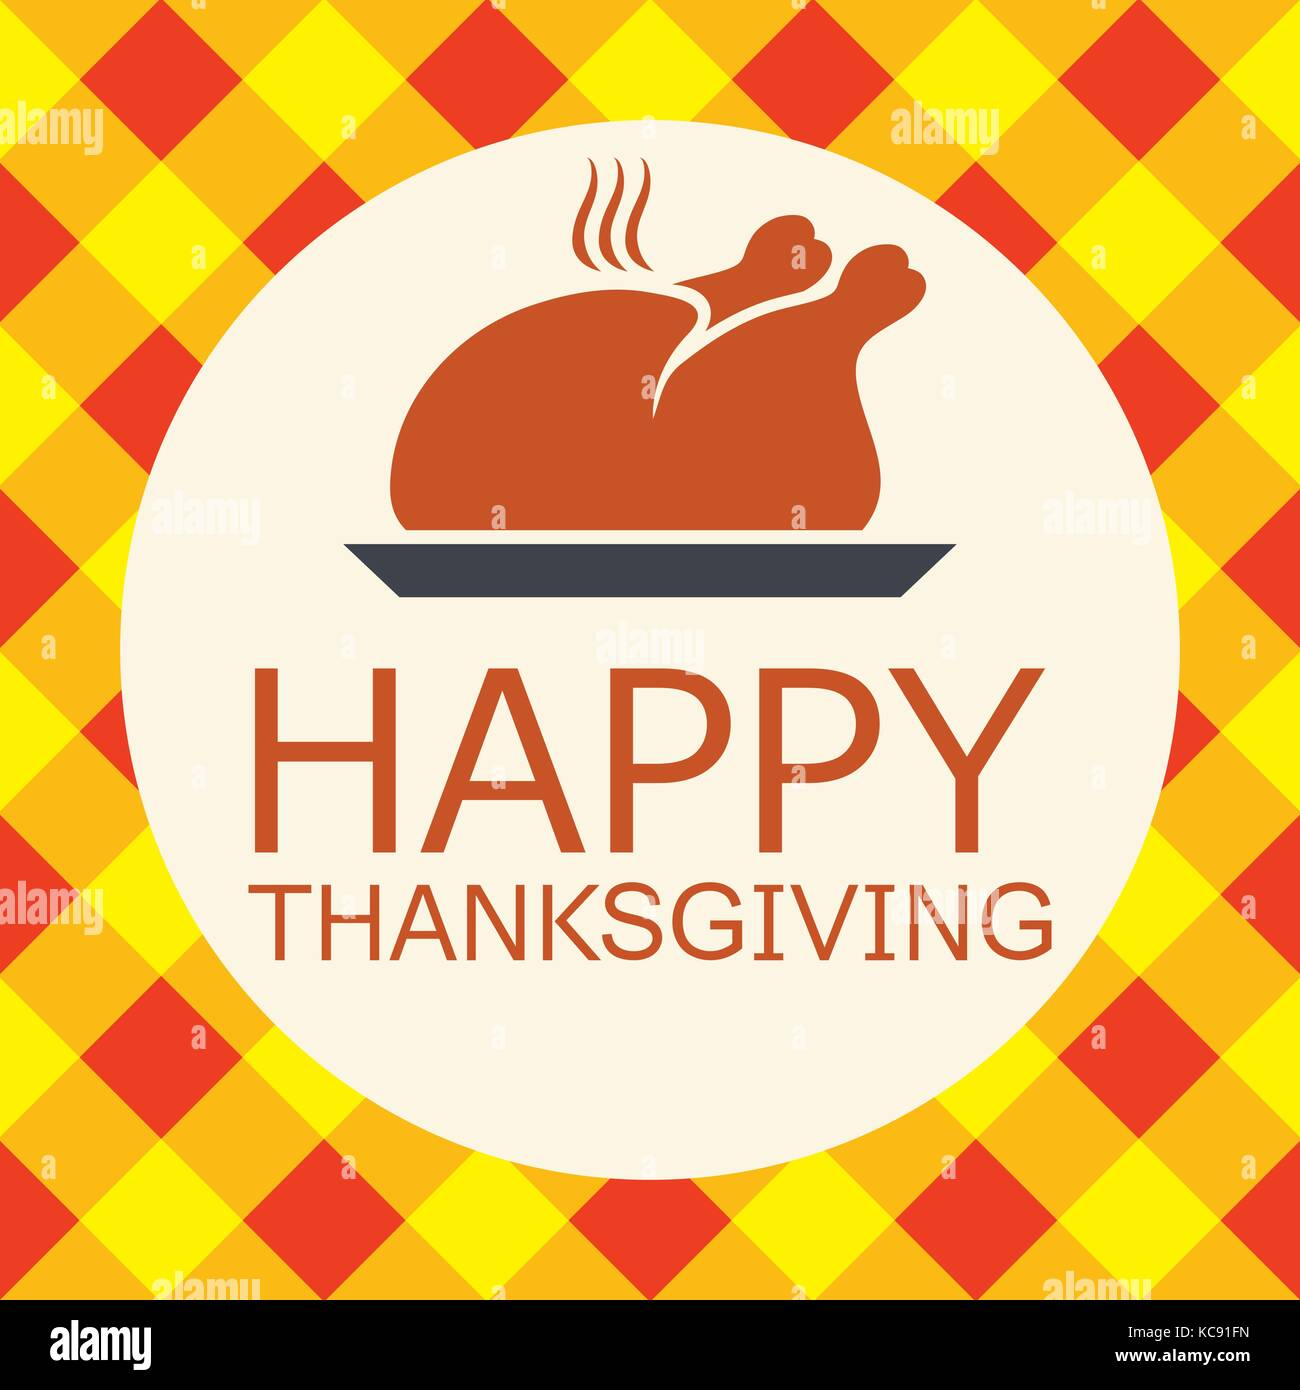 vector cooked turkey for happy thanksgiving day card. symbol of prepared turkey bird on checkered autumn background - Stock Vector